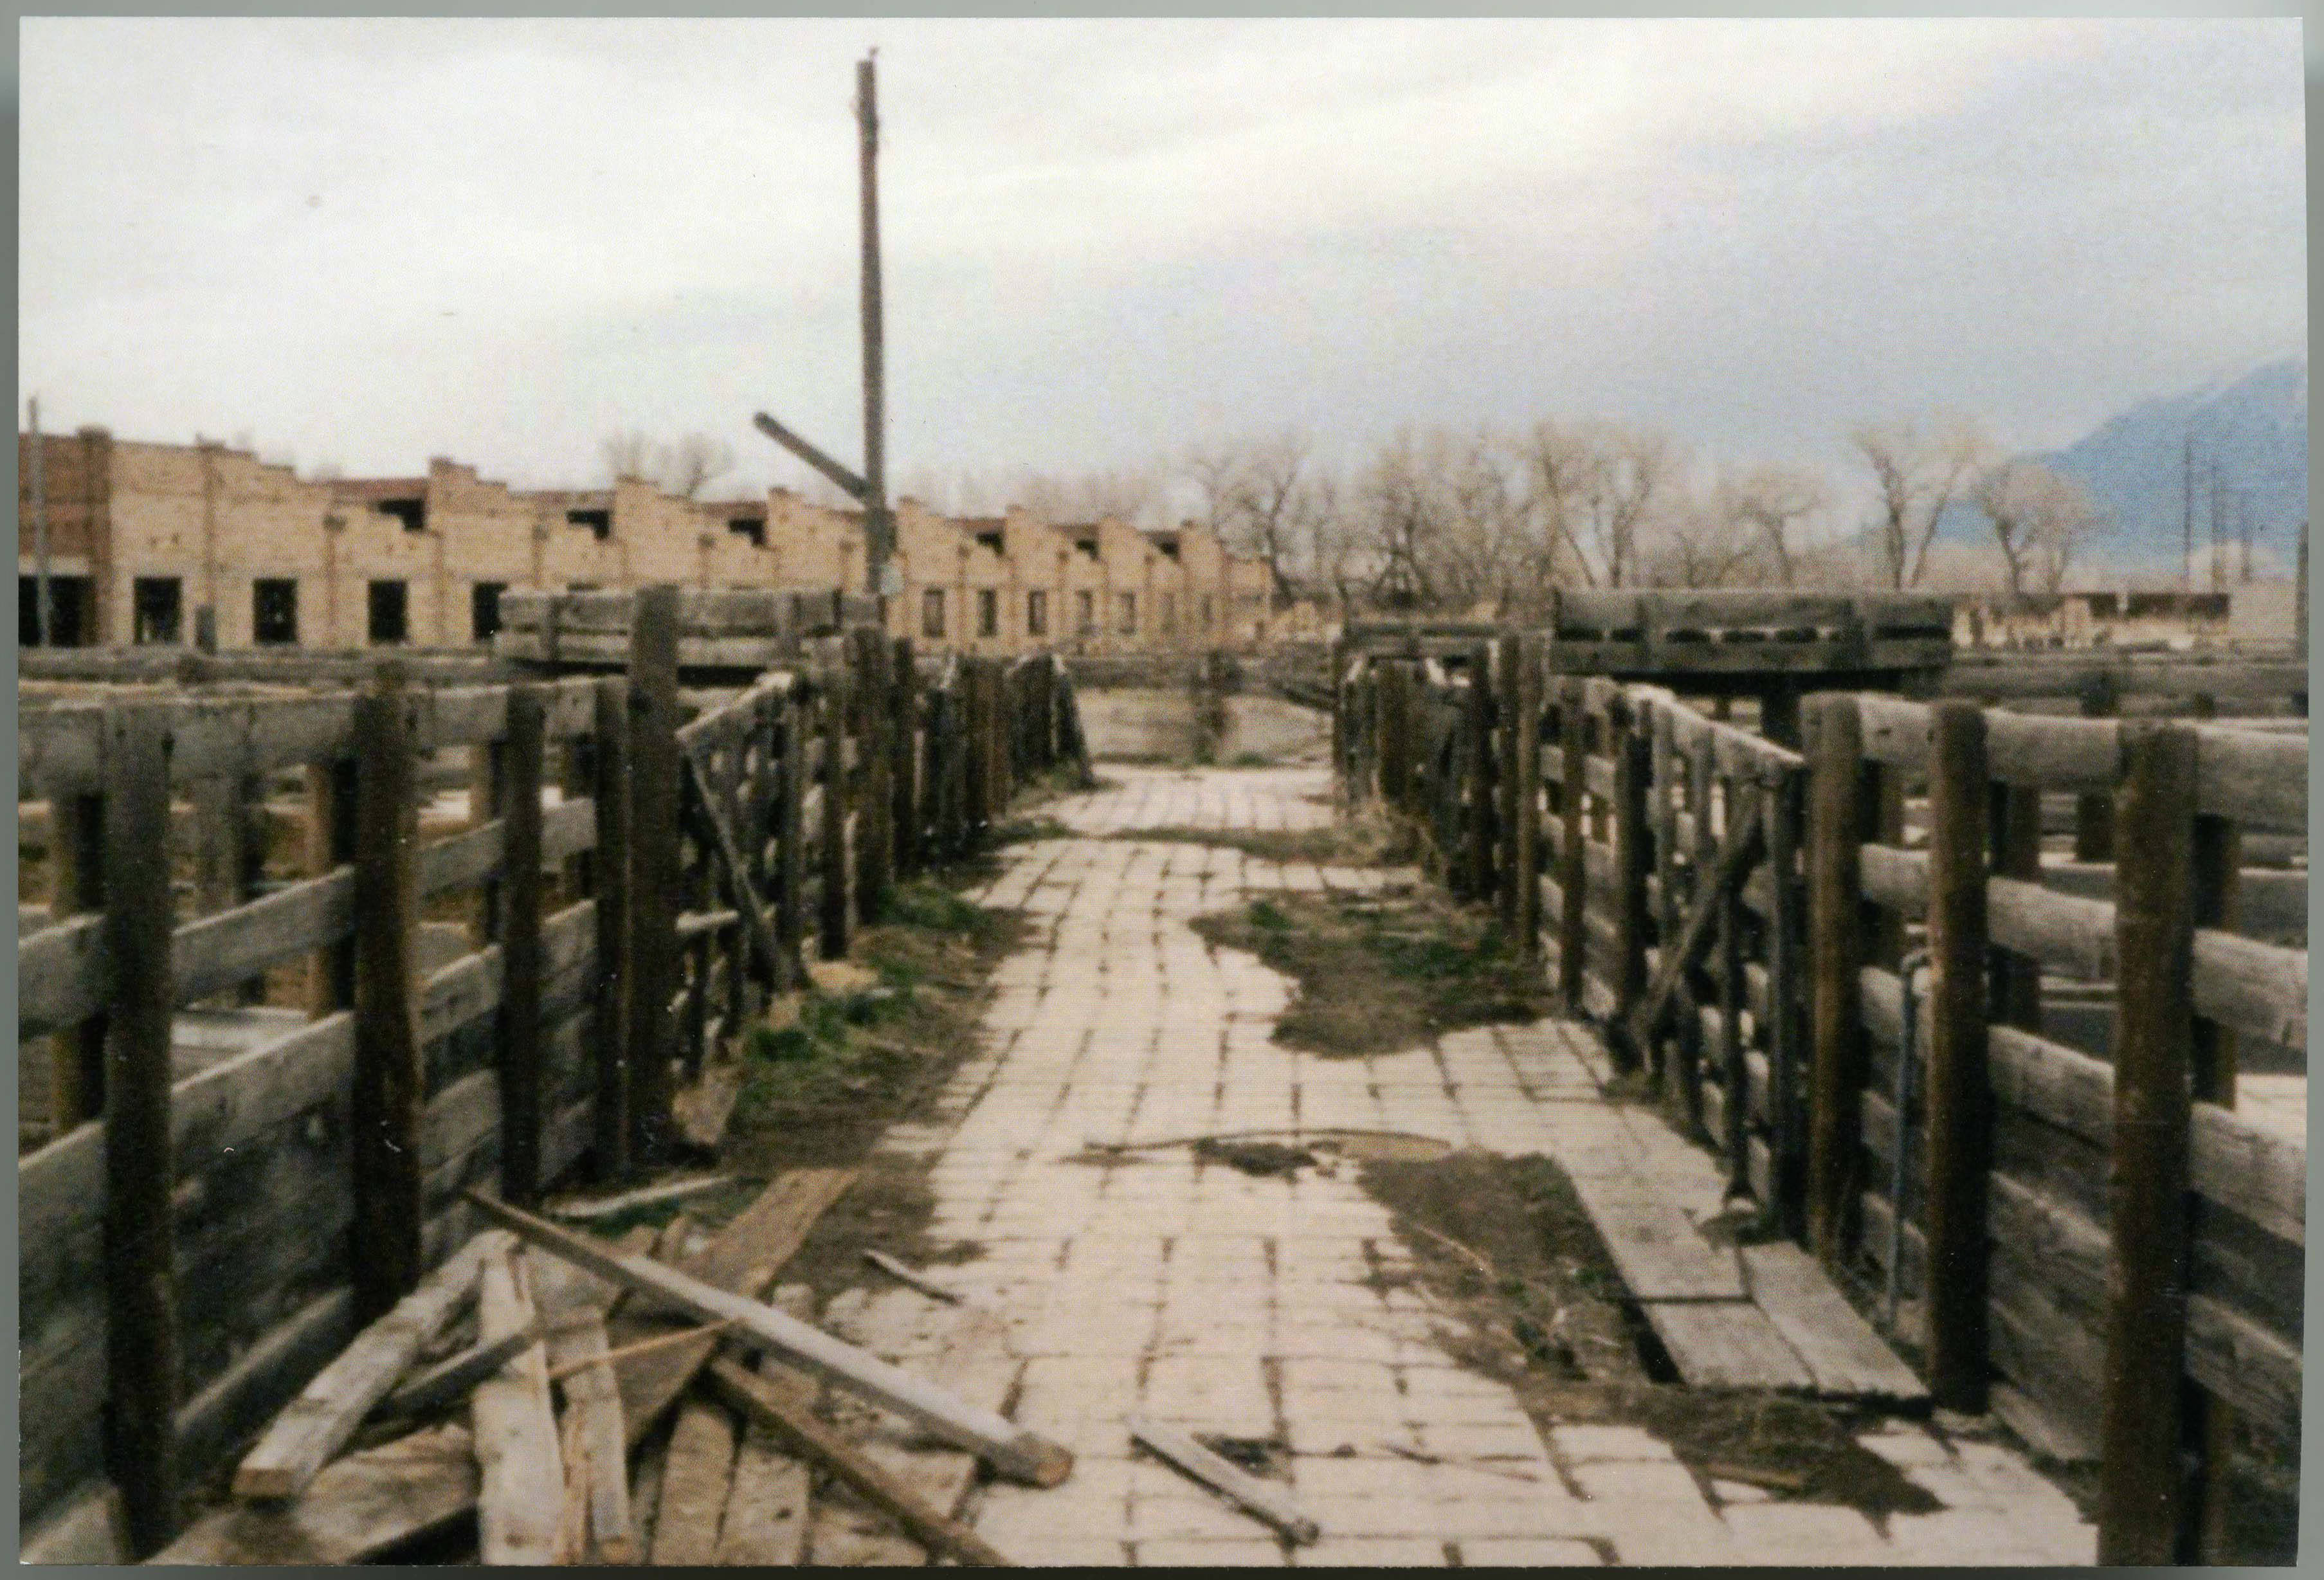 A 1987 photo of the Ogden Union Stockyards abandoned pens and cracking concrete. Photo from Weber State University Stewart Library Special Collections.